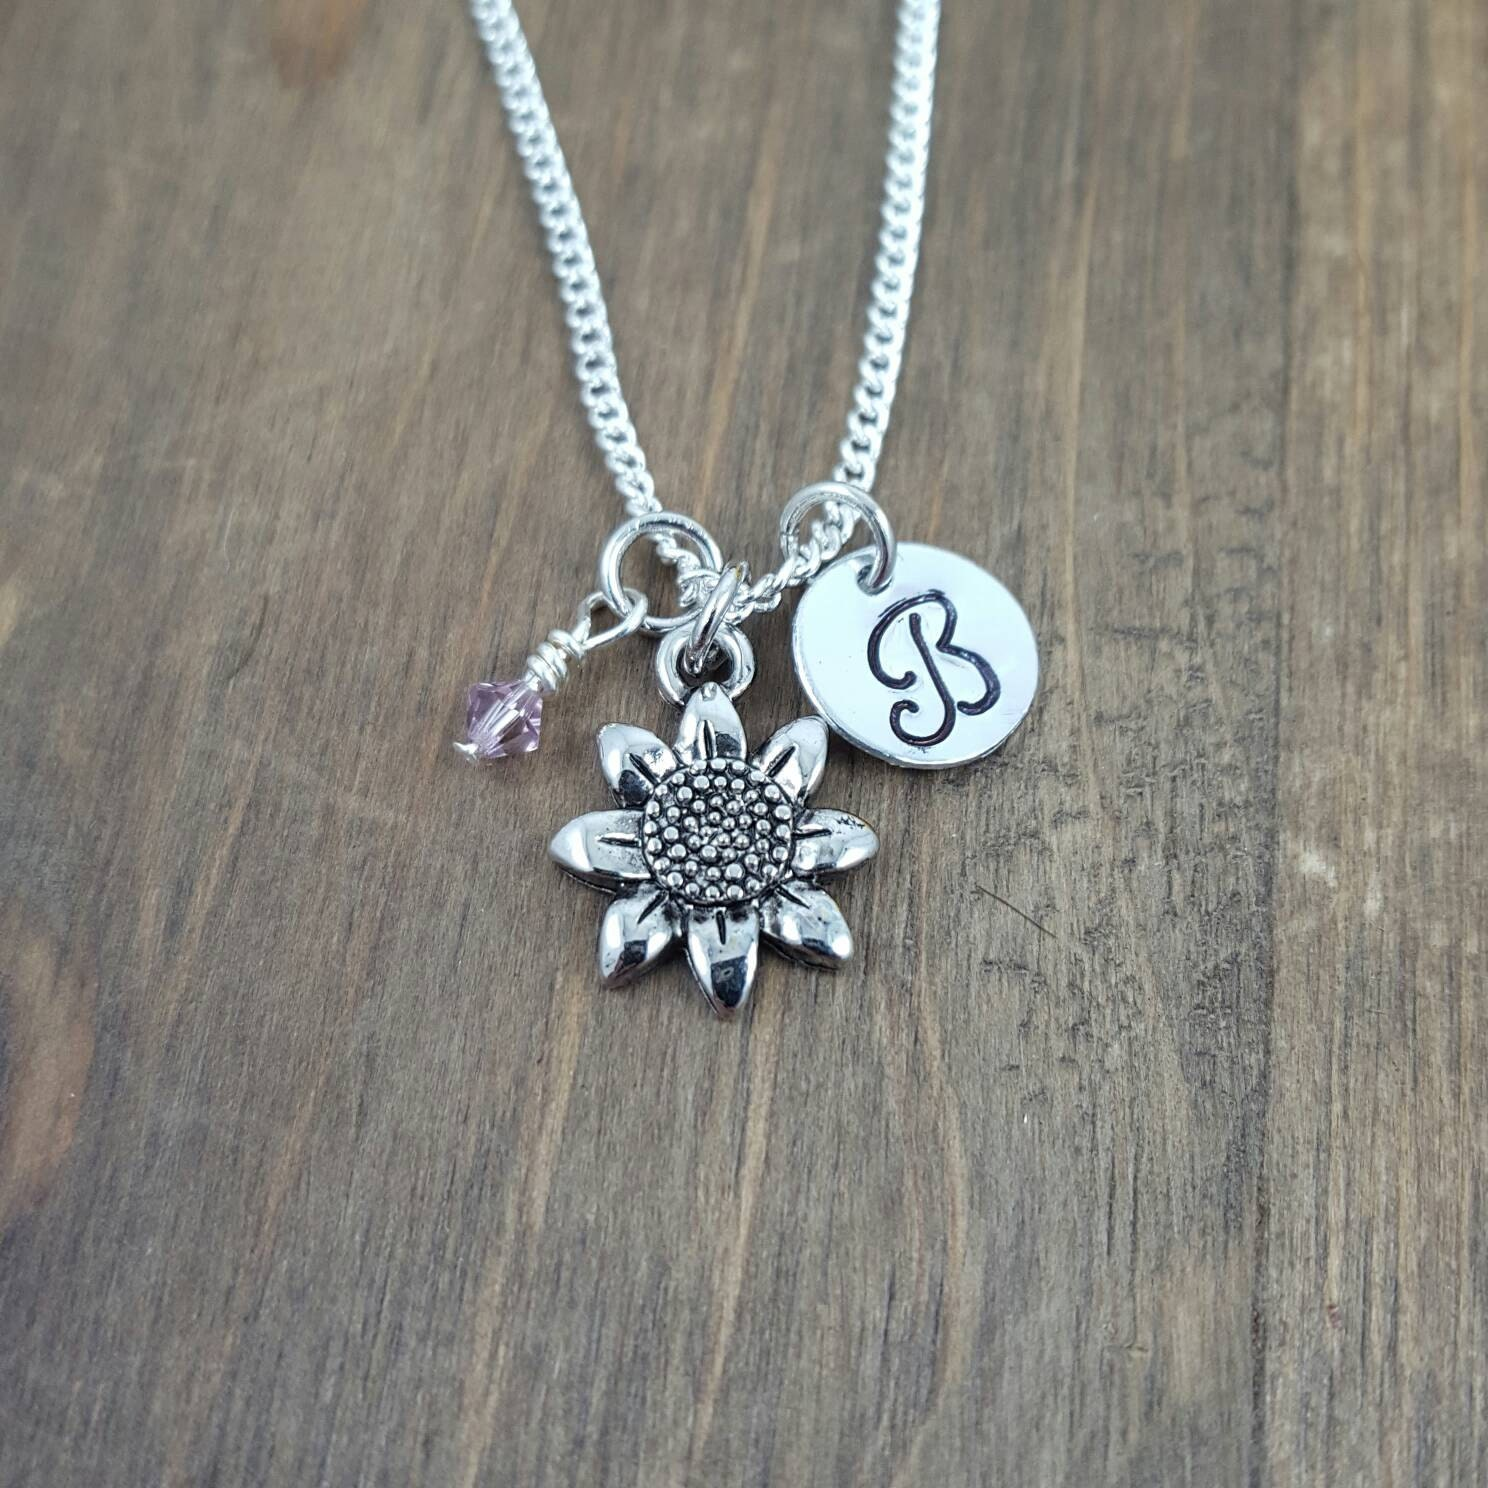 Personalized Sunflower Necklace Hand Stamped Monogram